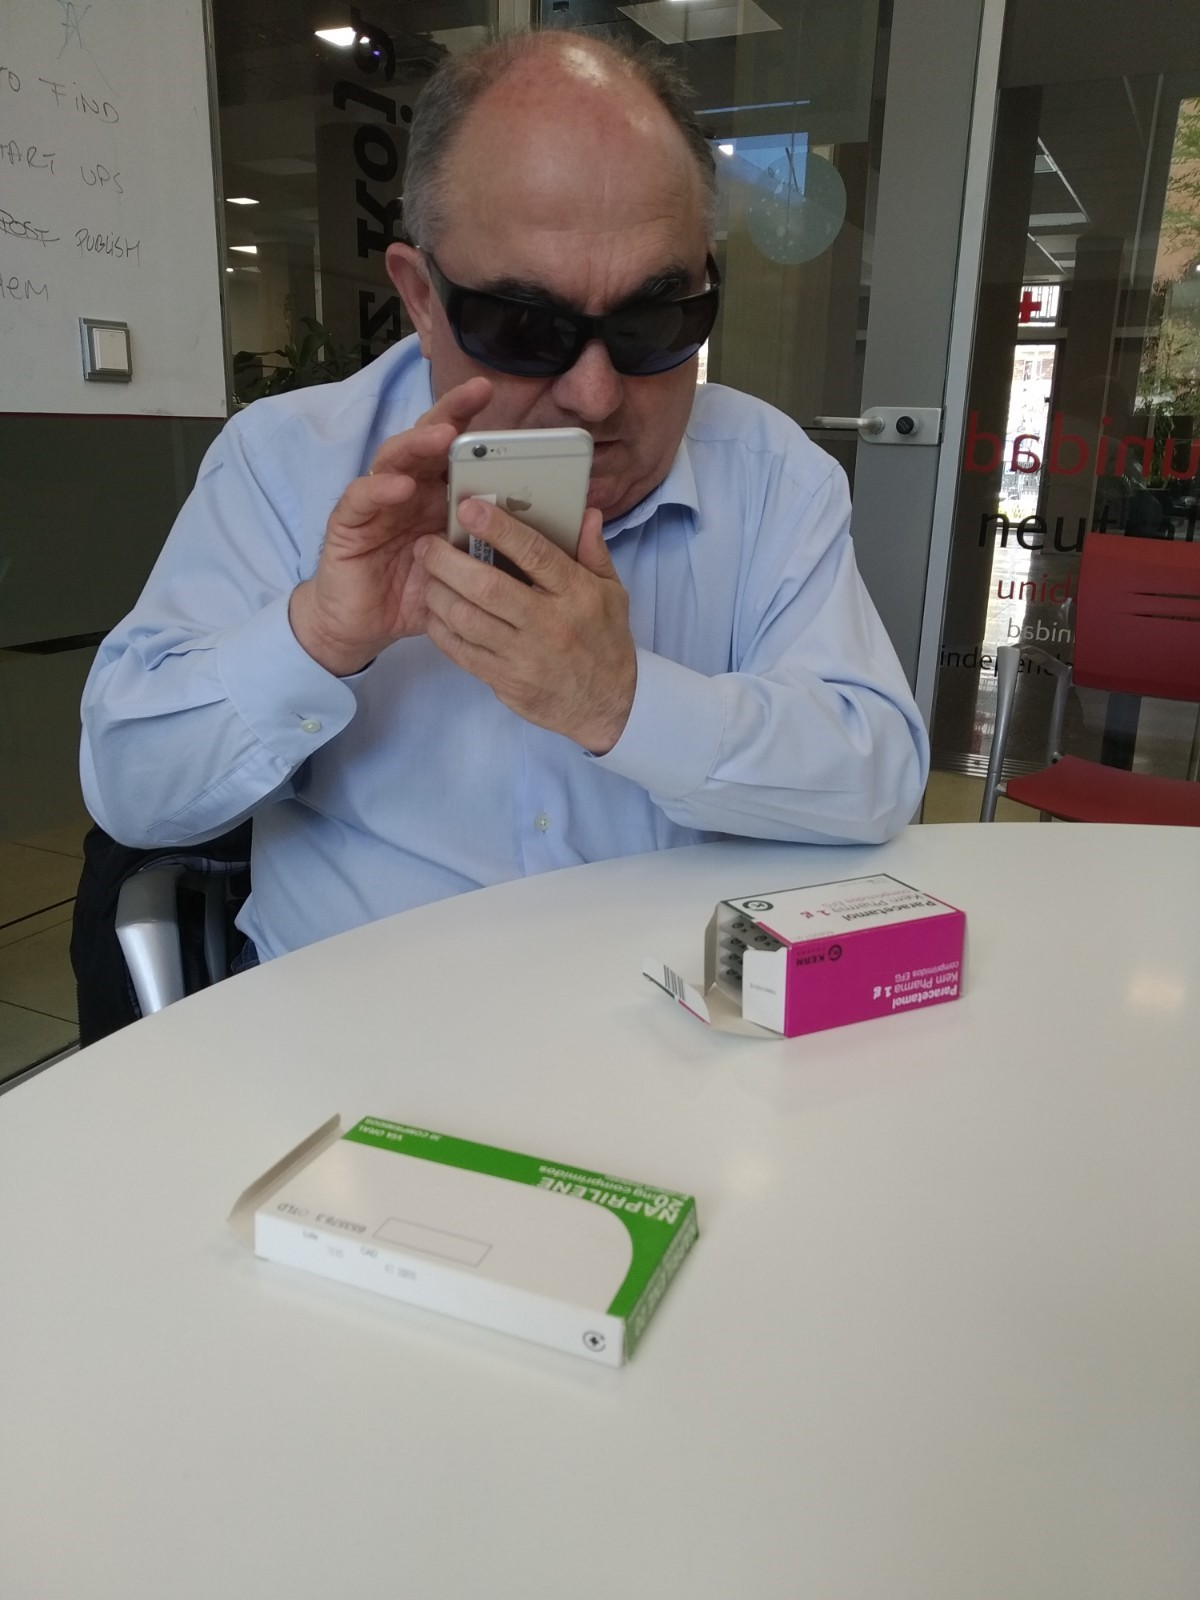 Andrés with the app in the smartphone and two containers of medications on the table